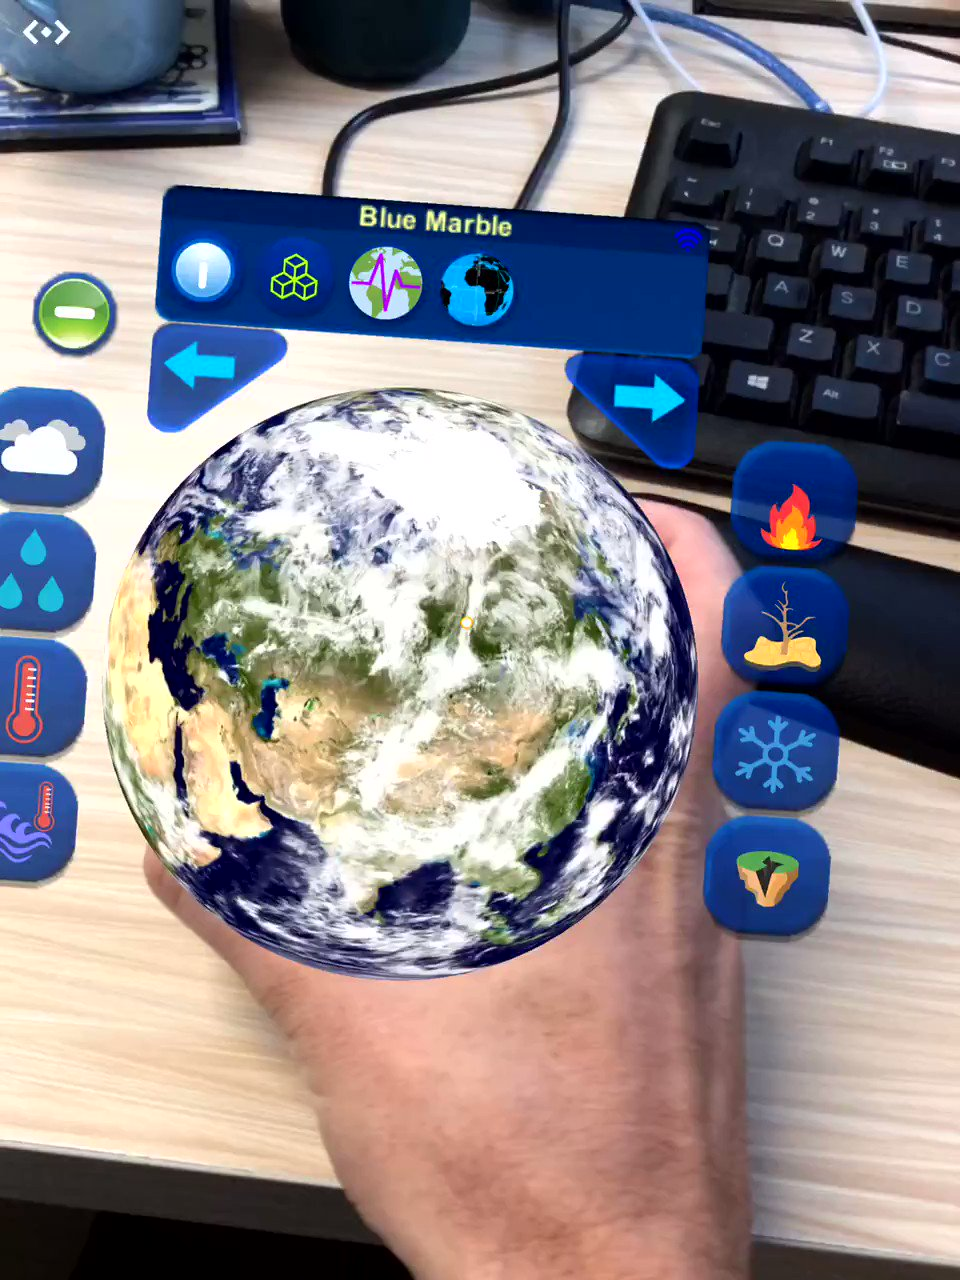 I have just come across #Hologlobe iPad app.  Realtime data displayed on a globe using @MergeVR  - fires, earthquakes, precipitation and more. Great tool for #HowTheWorldWorks. #ESFInnovation https://t.co/CRQK1oHh5O